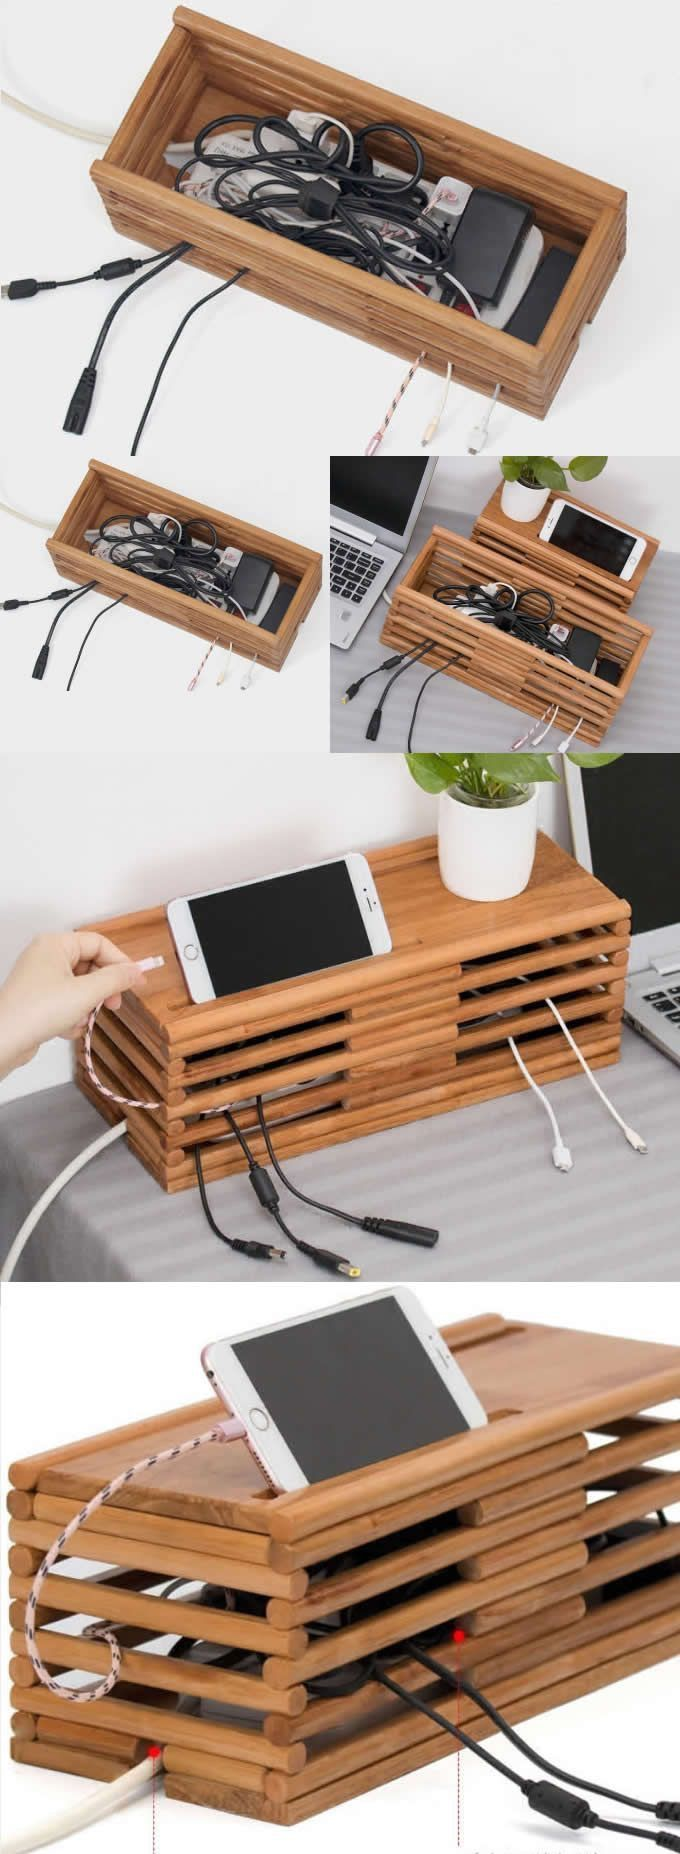 Pin By Rick Martin On Wood Cord Organization Cable Organizer Wire Storage